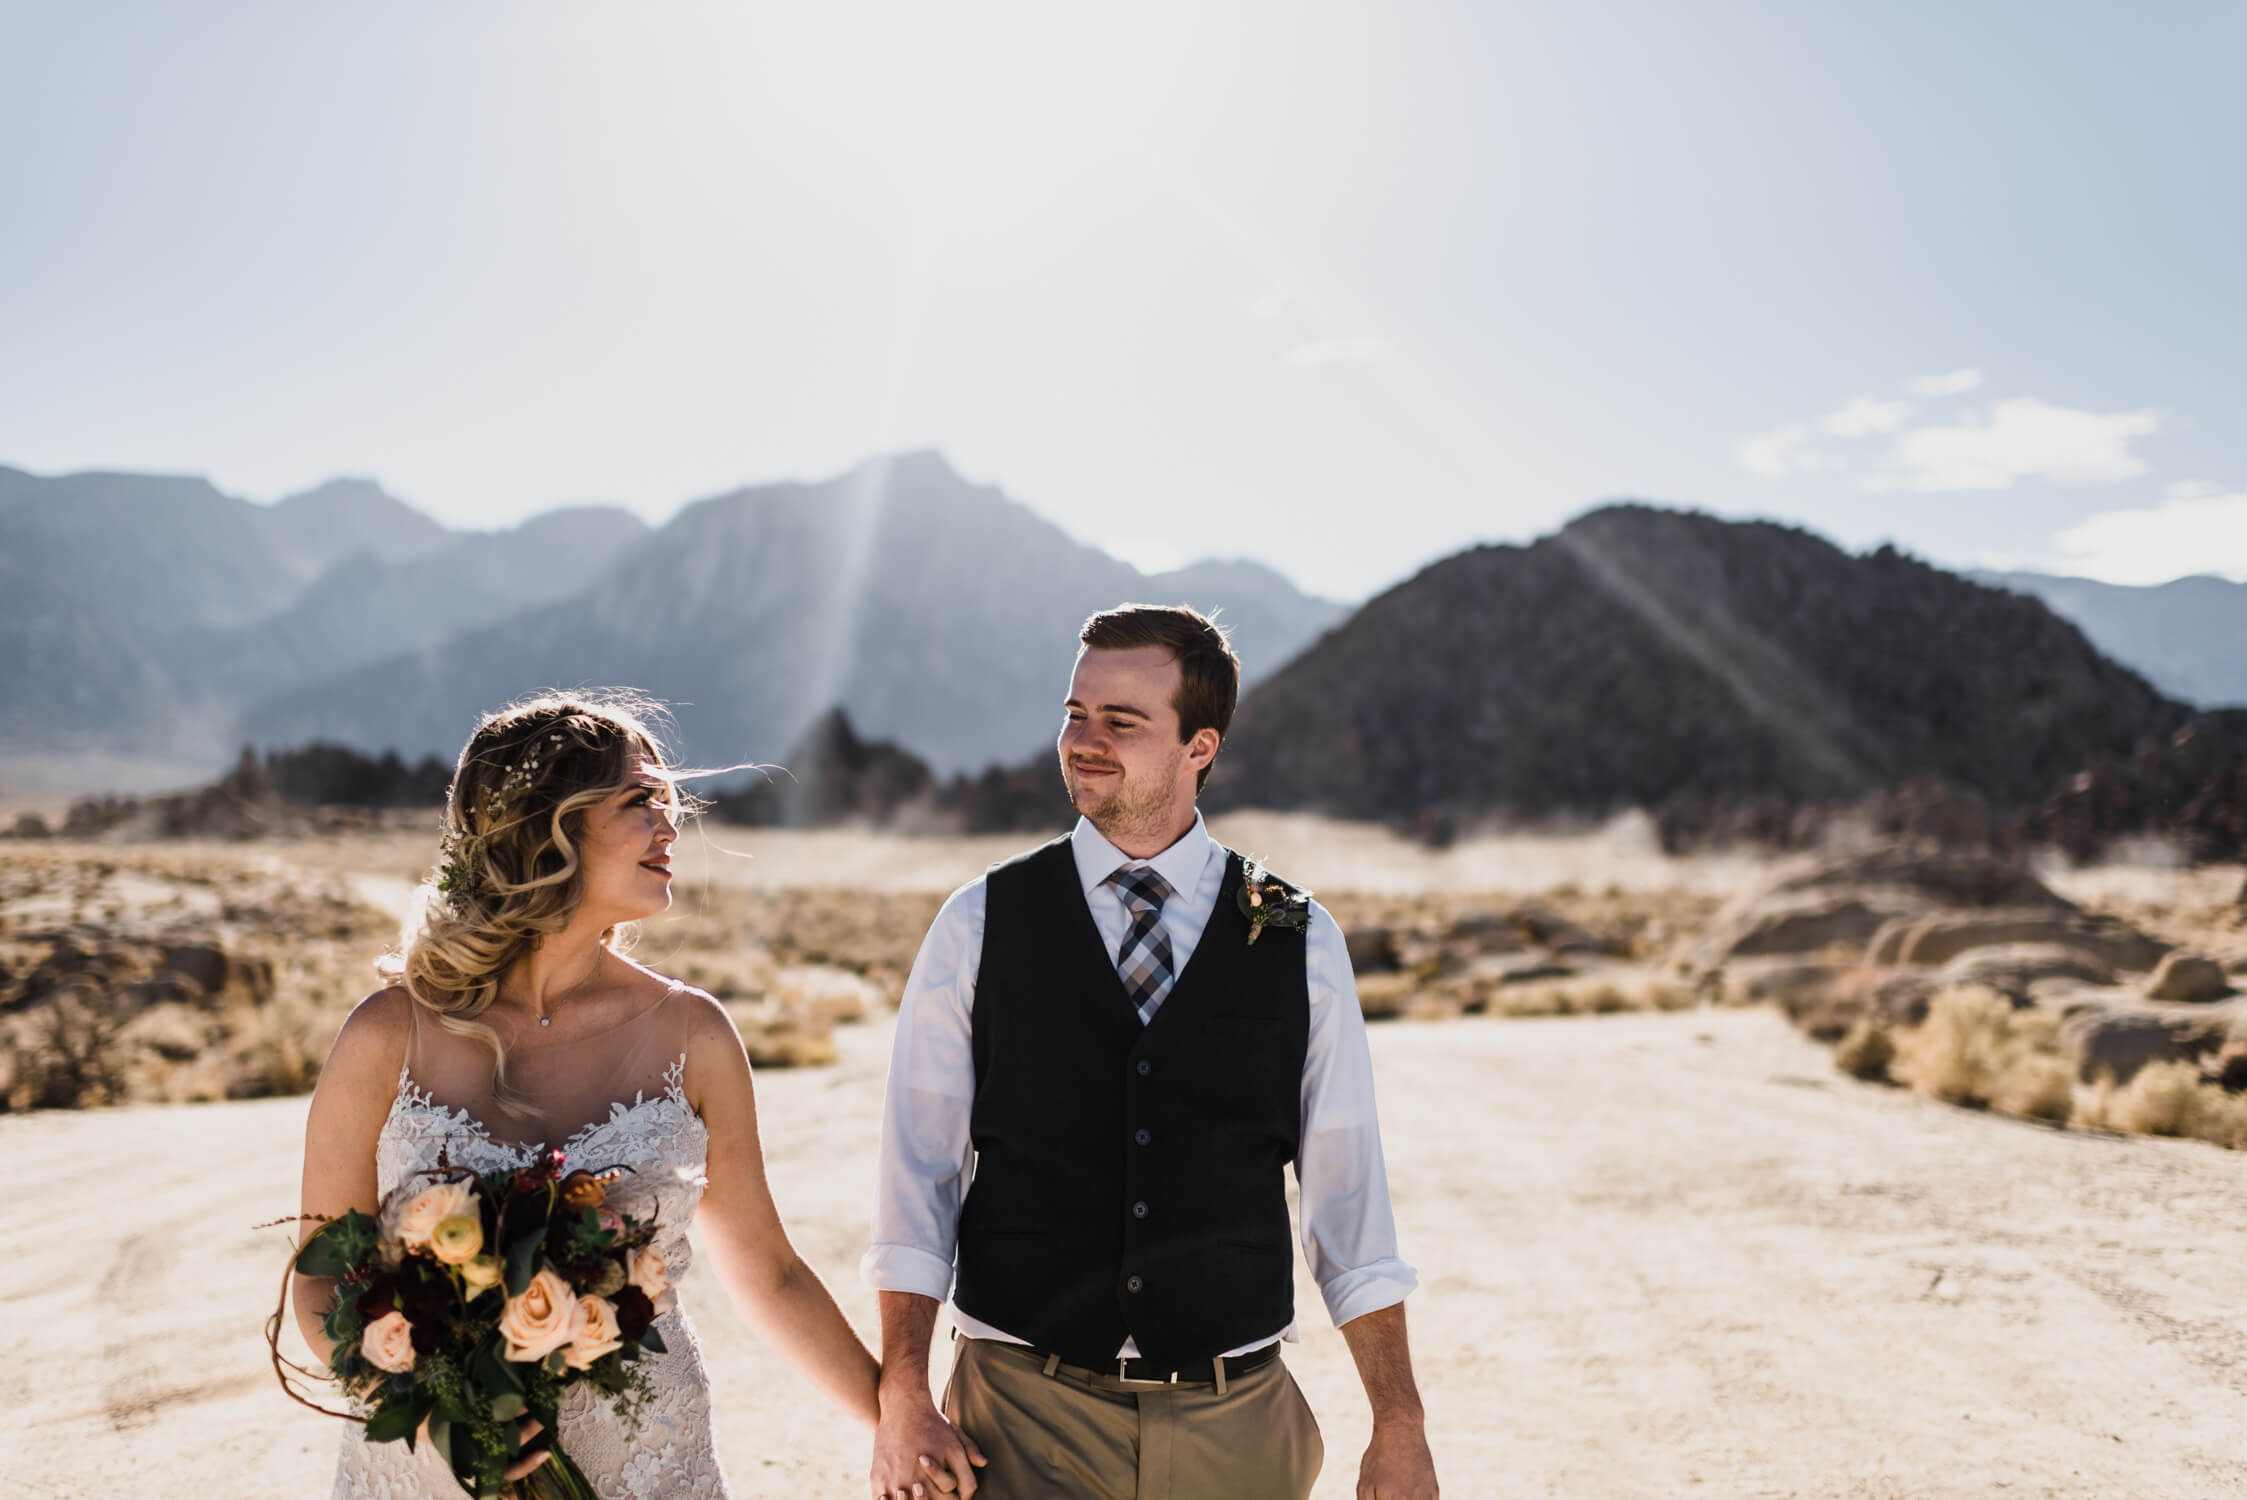 Alabama Hills california adventure elopement photographer